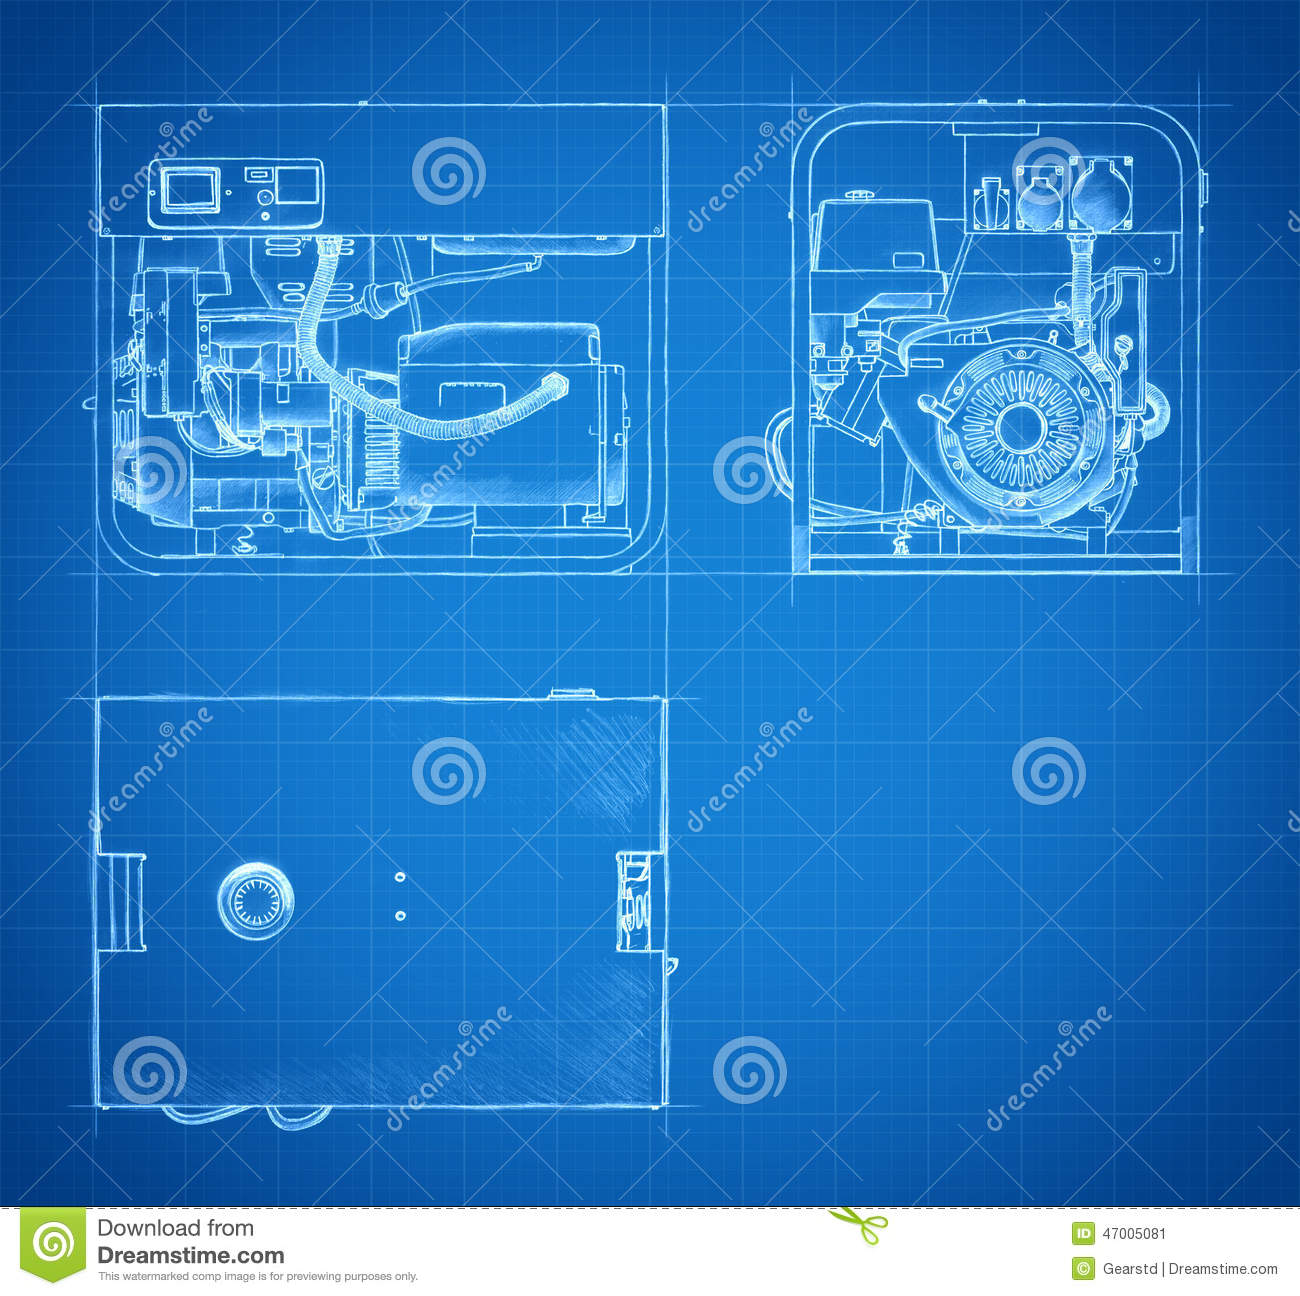 Blueprint of generator drawings and sketches stock illustration blueprint of generator drawings and sketches malvernweather Image collections